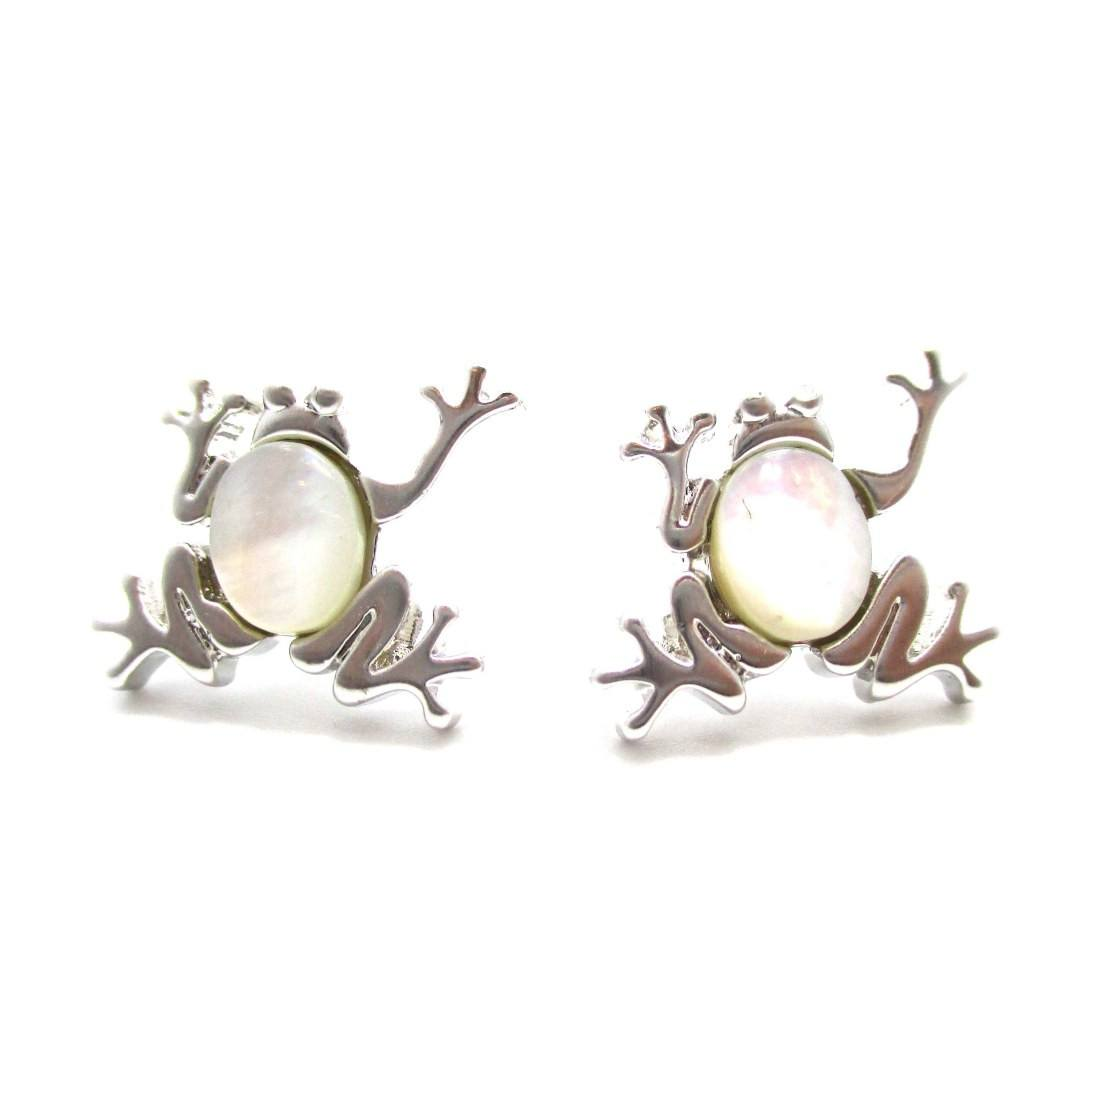 Frog Toad Shaped Animal Themed Stud Earrings in Silver